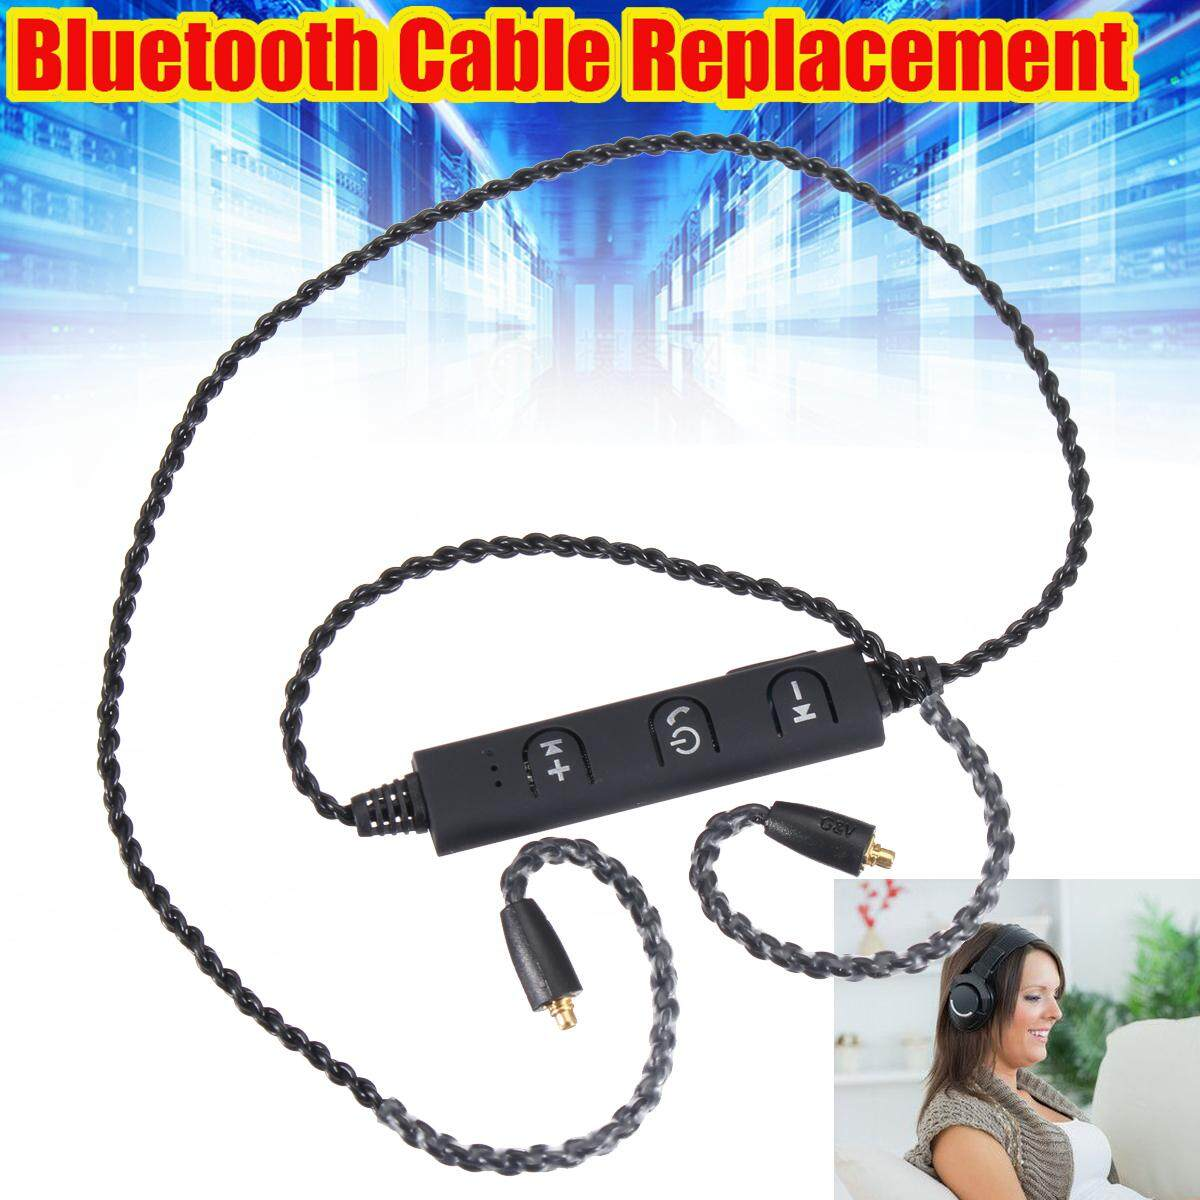 Great Deal Mmcx Bluetooth Earphone Cable Cord Csr4 1 For Shure Se215 Se535 Ue900 Black Intl